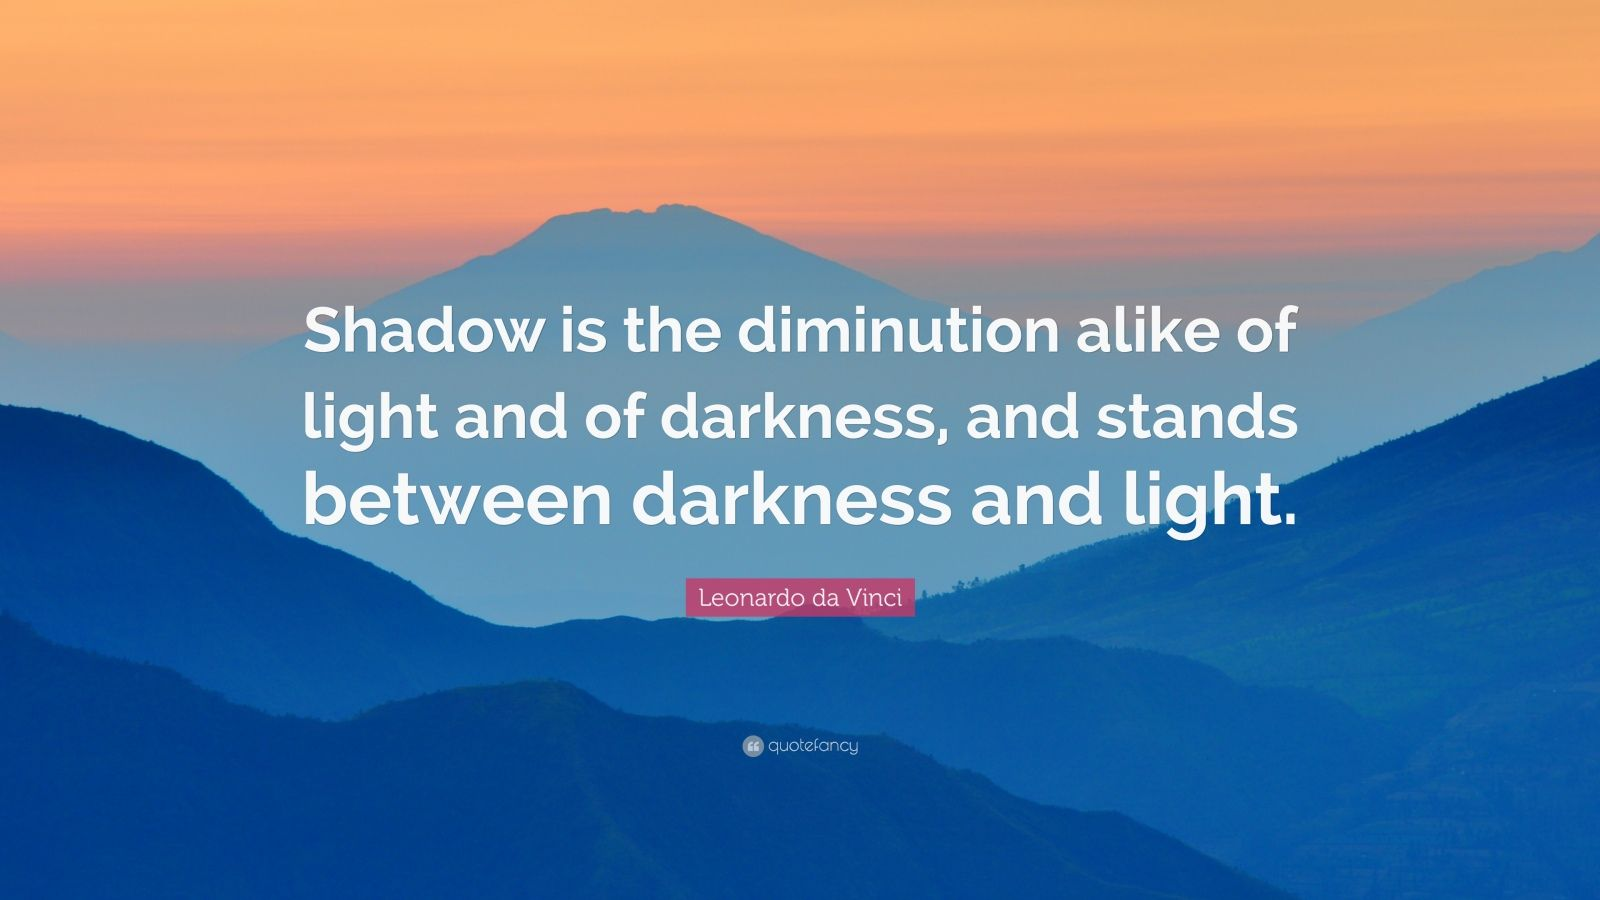 """Leonardo da Vinci Quote: """"Shadow is the diminution alike of light and of darkness, and stands between darkness and light."""""""